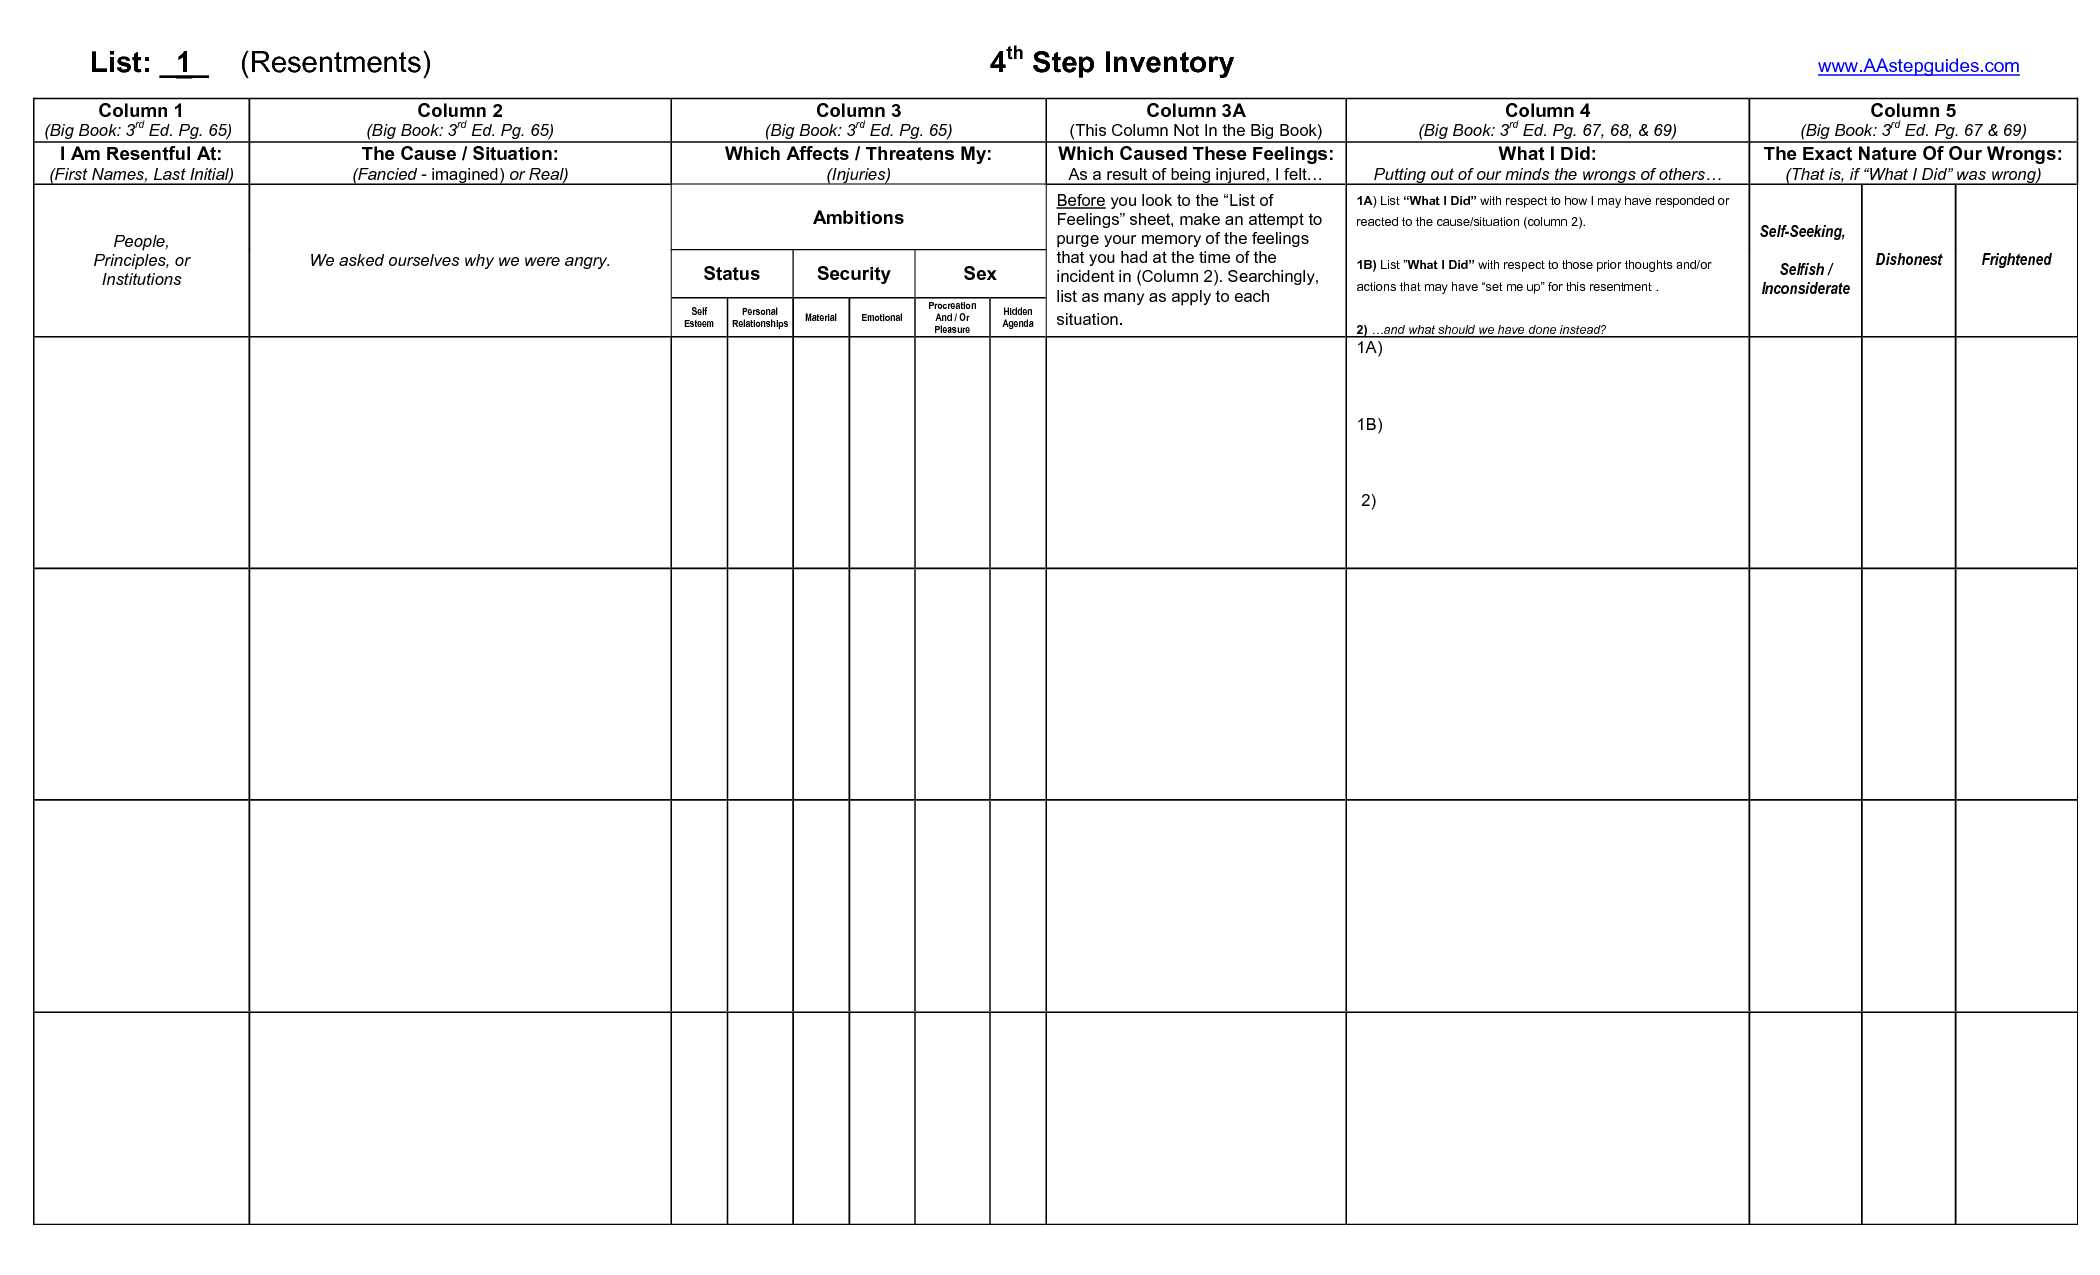 4th step worksheet aa – webbuilderdirectory info moreover  furthermore Origins of Moral Inventory   AA The Original Way Group besides  as well Aa 4th Step Worksheets Step 4 Worksheet Luxury Step Worksheet Aa 4th in addition A A   N A 4th and 5th Steps of the 12 steps  Illustrated additionally 4th step guide   fourth step inventory   Big Book Study Worksheets in addition Aa Step 4 Worksheets   Siteraven additionally Aa Step 4 Worksheet   Obamaletter moreover Aa Worksheets Letter Worksheets Aa Step 4 Inventory Worksheets furthermore step 4 aa worksheet – kakoo info additionally Free Worksheets Liry   Download and       counselor   Drug together with 4th step guide   fourth step inventory   Big Book Study Worksheets furthermore  furthermore  further Aa 4th Step Worksheet Ex les. on aa step 4 inventory worksheet